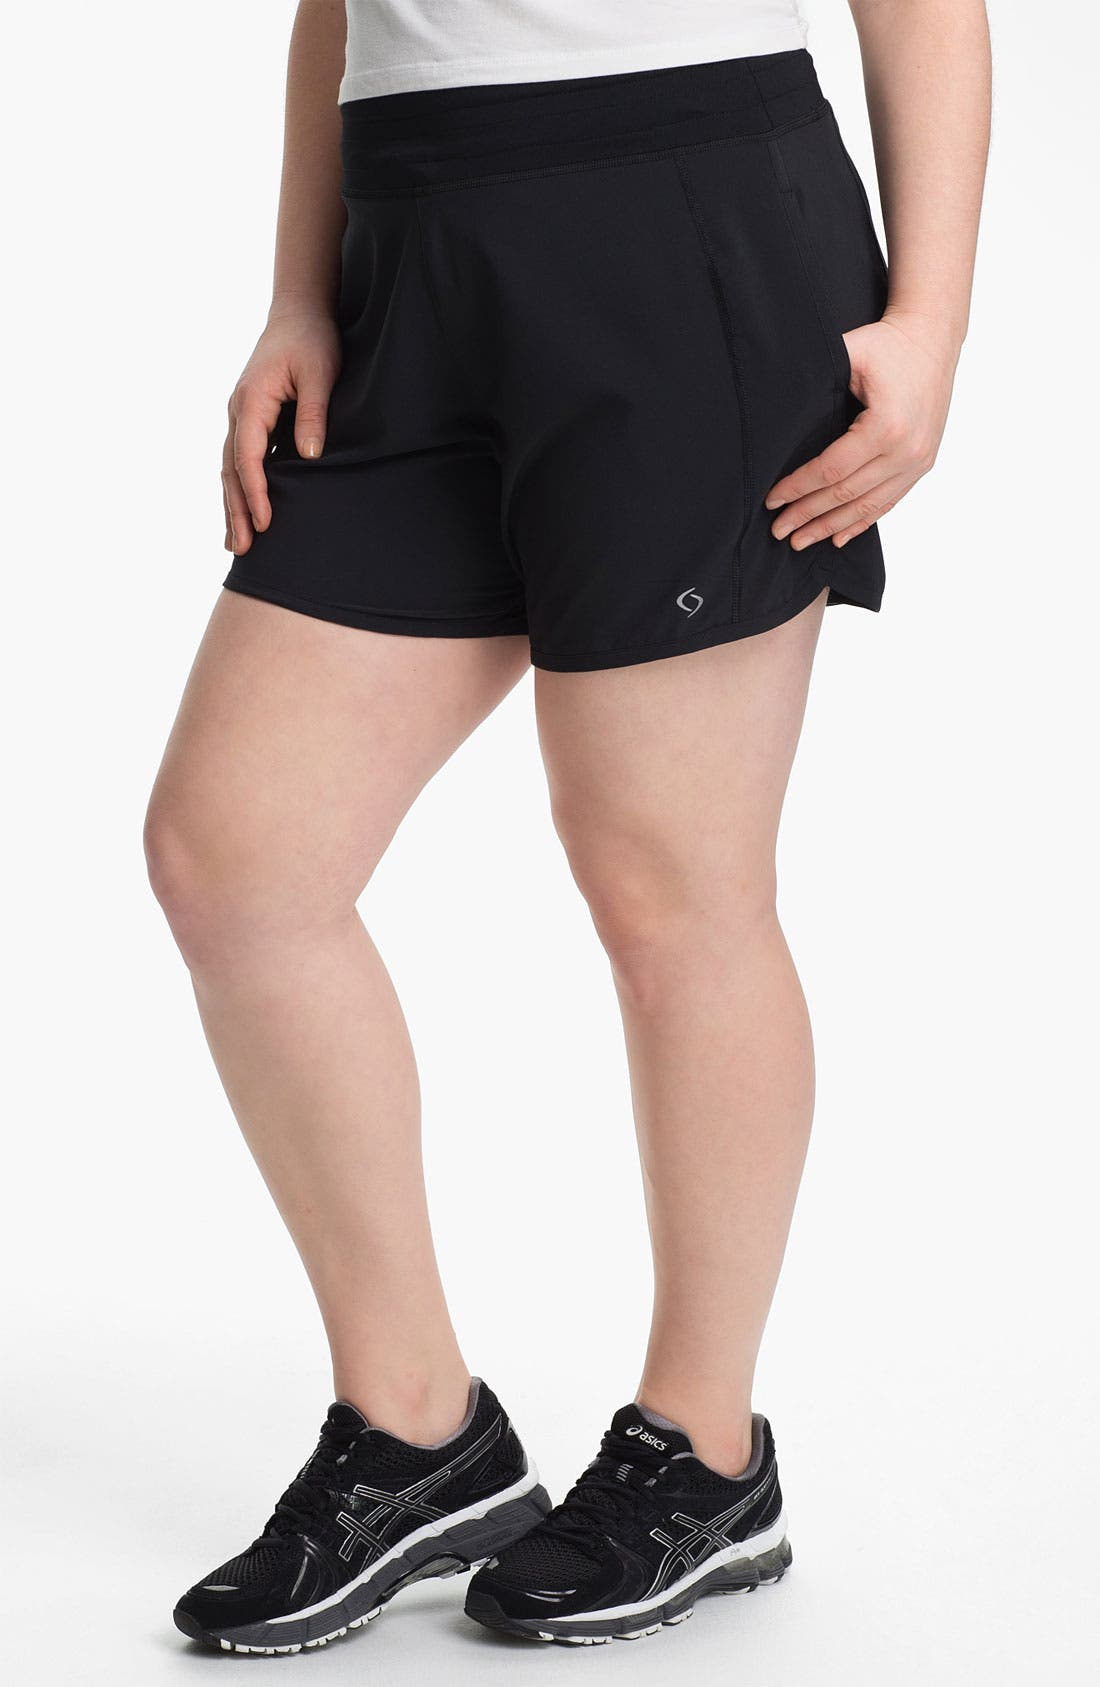 Alternate Image 1 Selected - Moving Comfort 'Work It' Shorts (Plus Size)